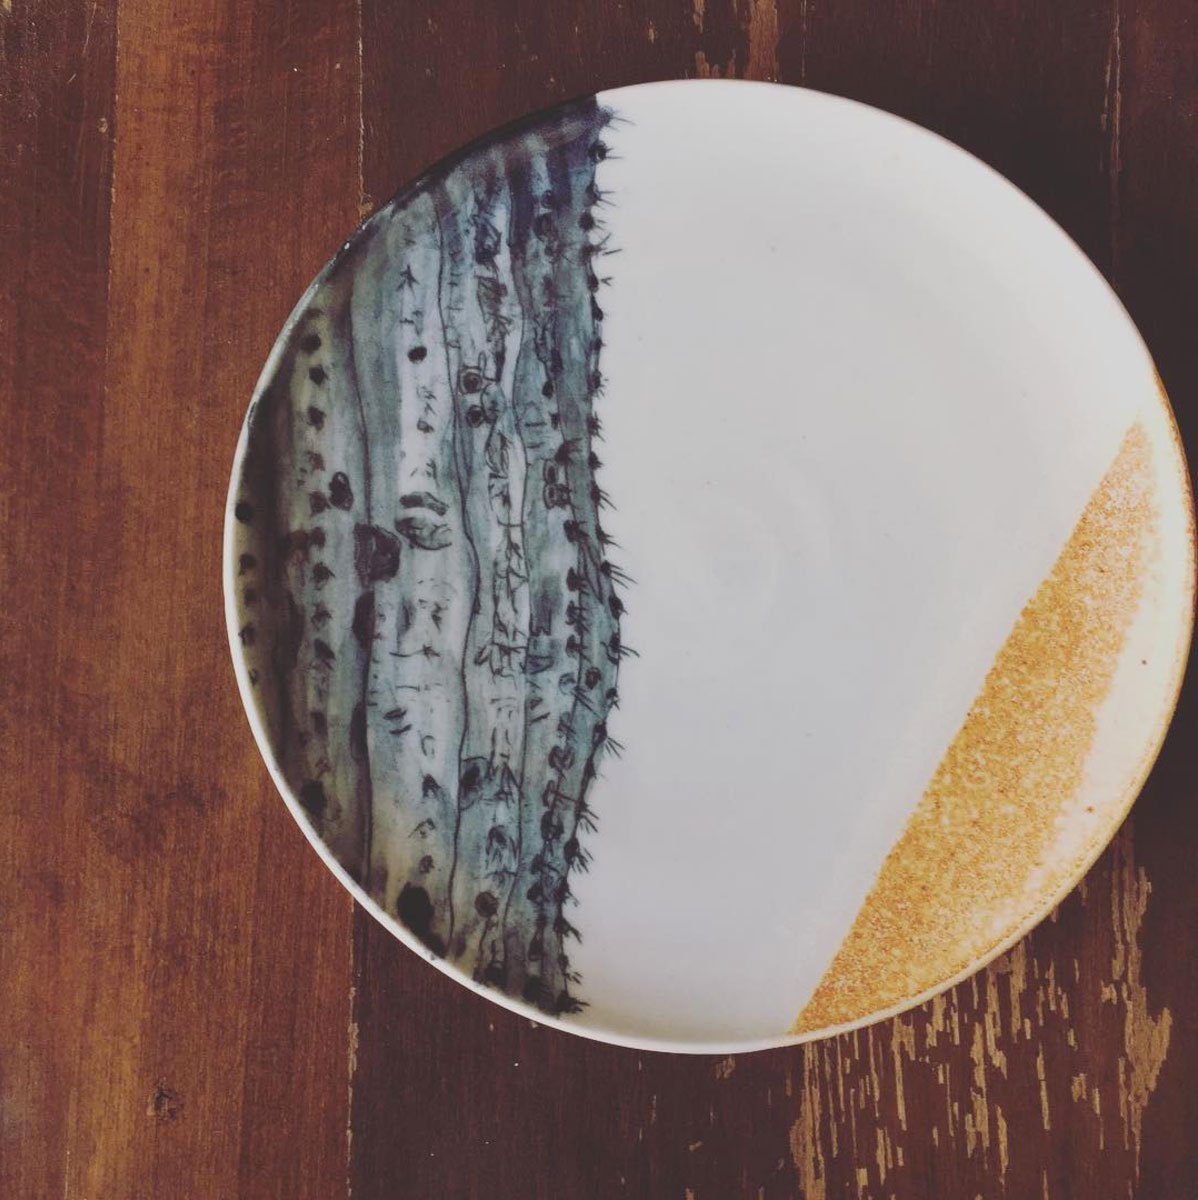 Clay: Arizona Plate